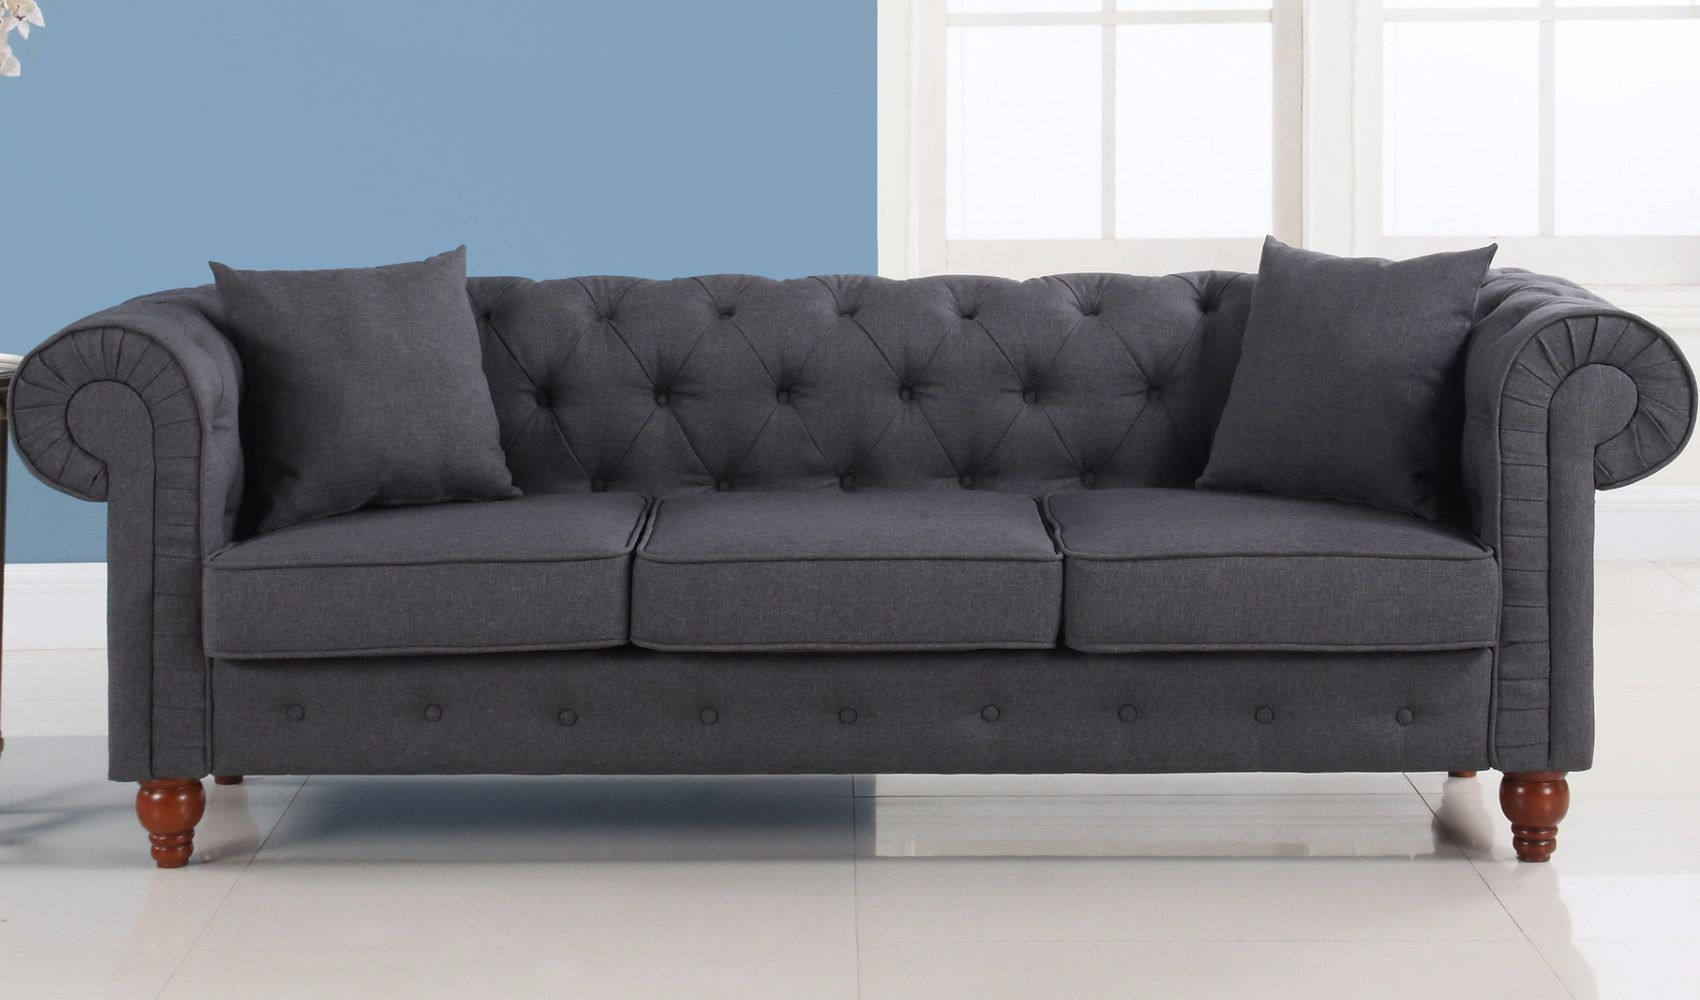 Stratford Classic Grey Fabric Chesterfield Sofa Sofa Chesterfield Style Sofa Classic Chesterfield Sofa